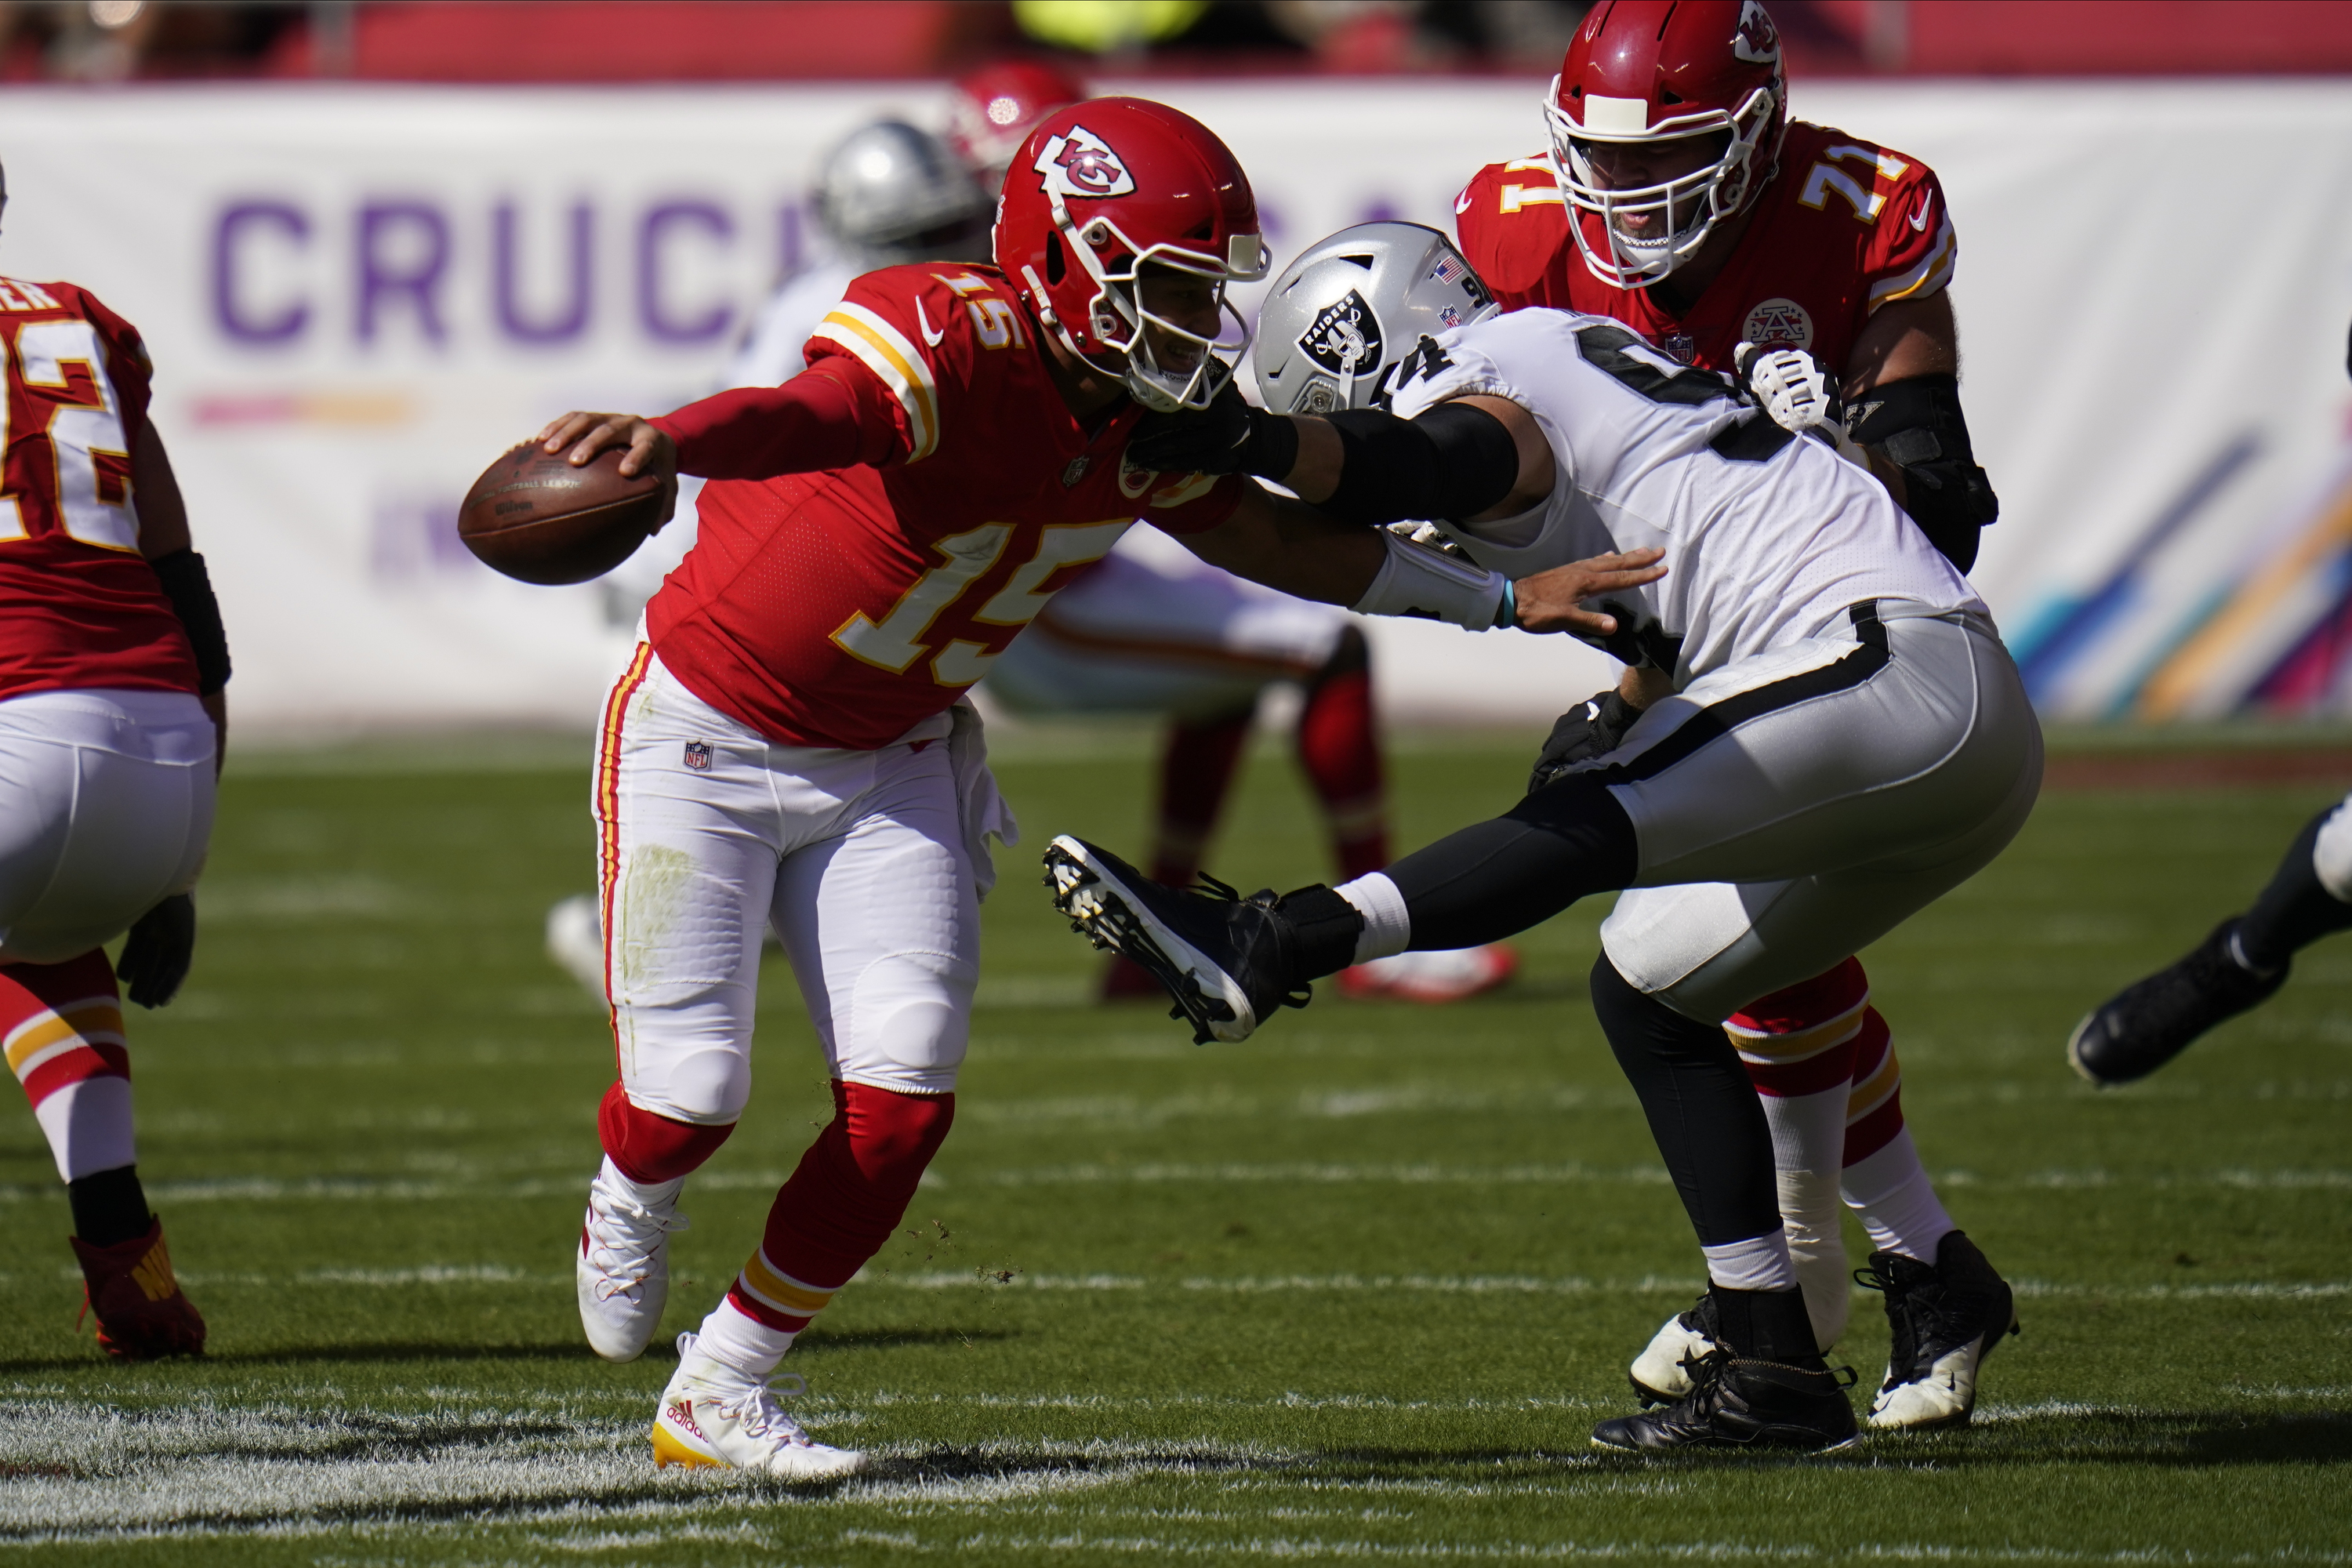 Raiders mailbag: Trent Brown in team's future plans after COVID protocol concerns?